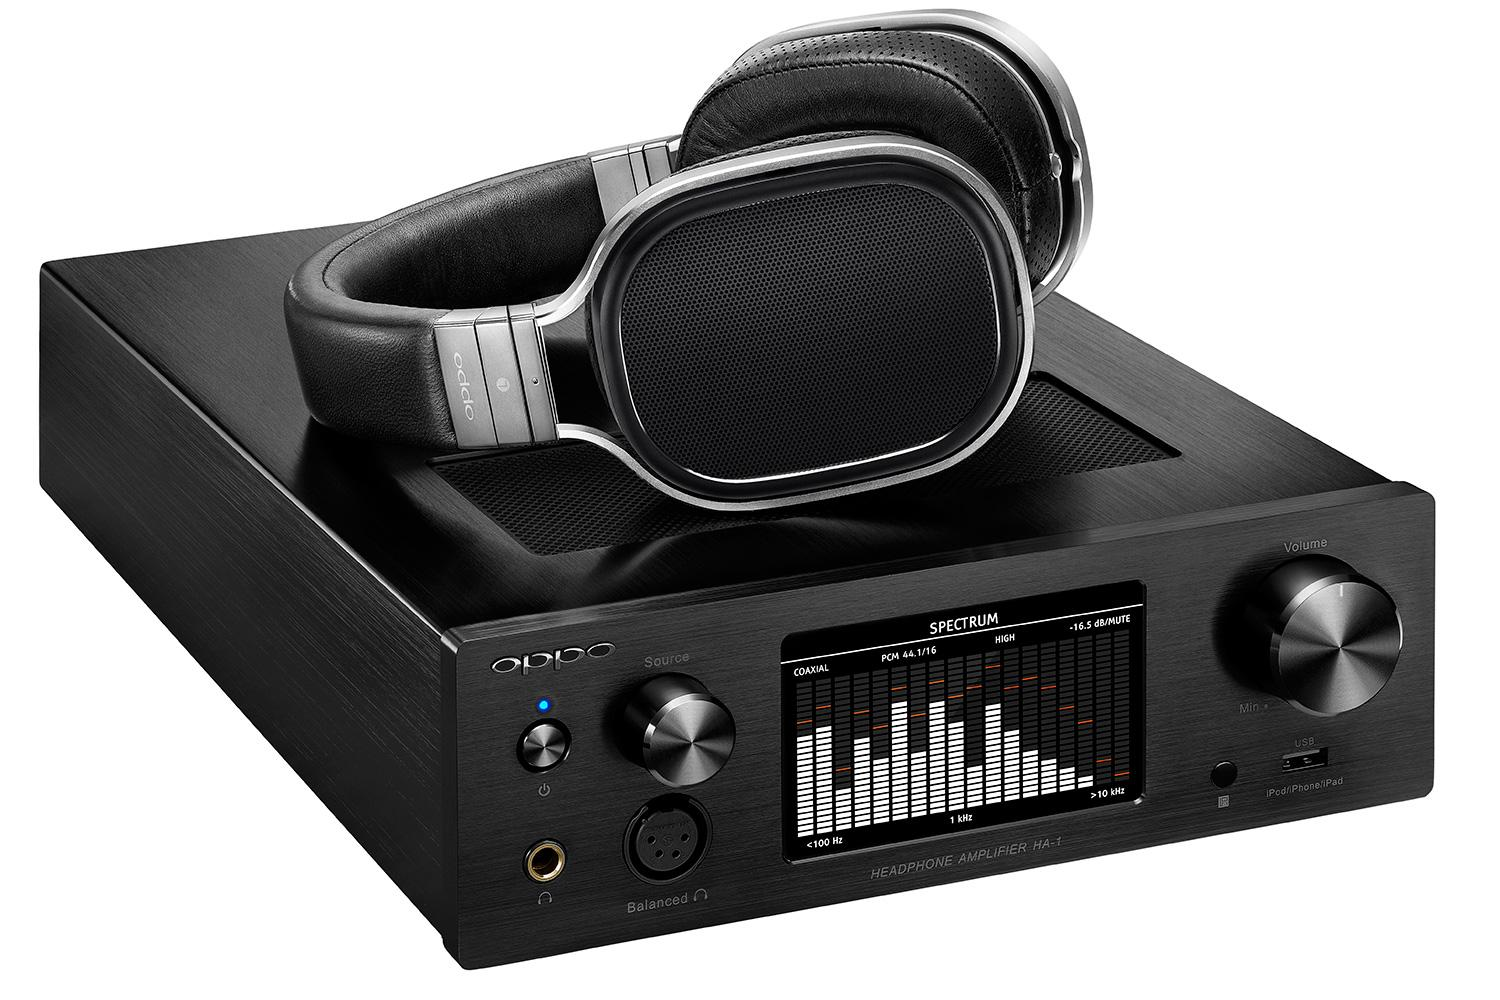 OPPO PM-1 PM-2 PM-3 Headphone Review